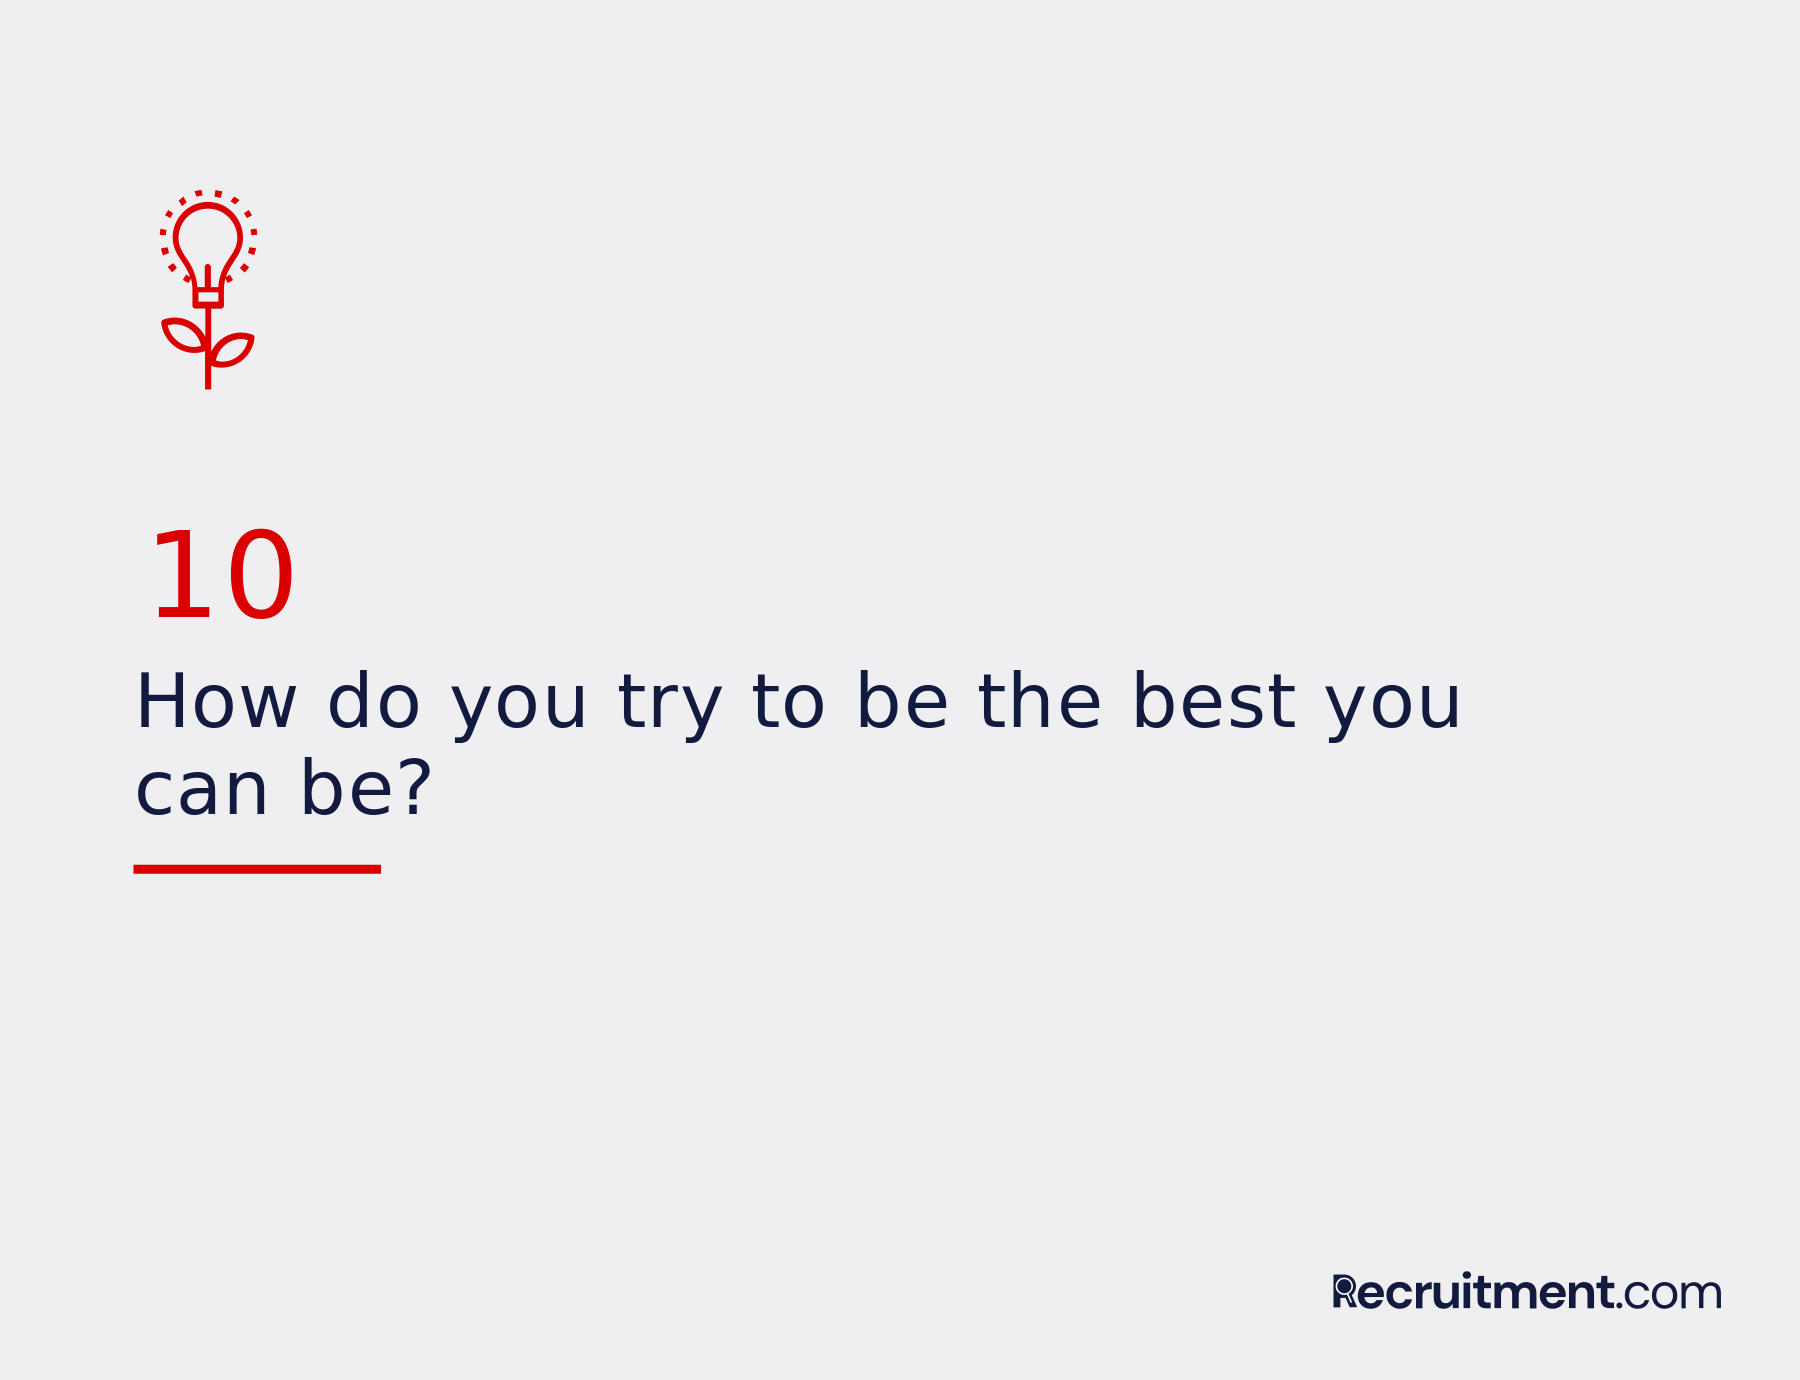 Common interview question 10: The best you can be